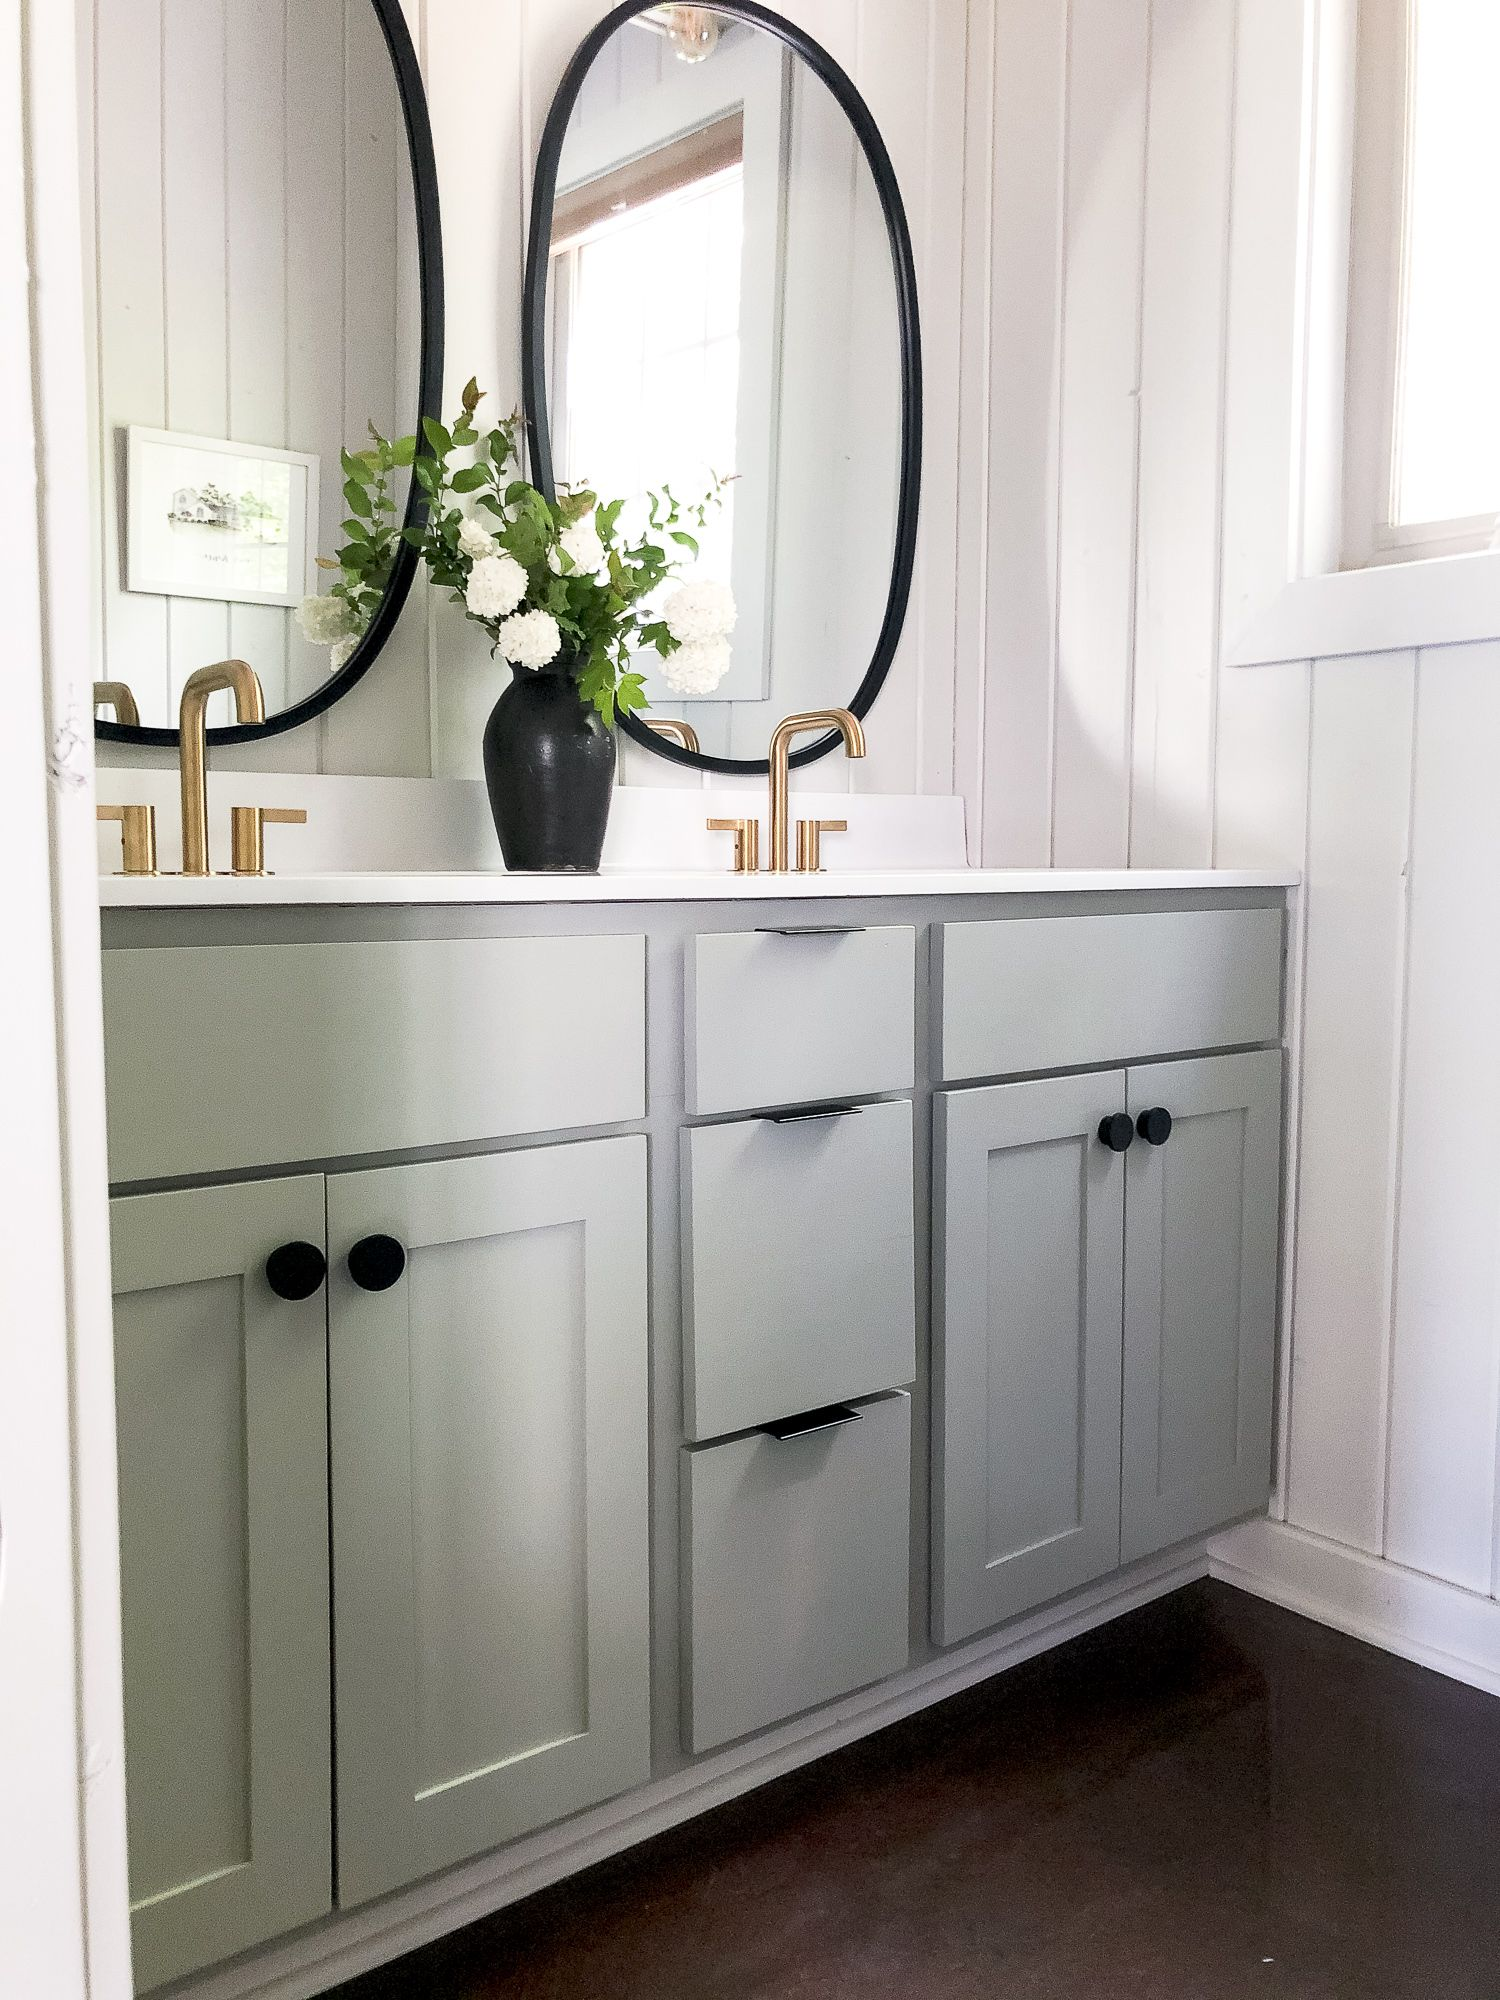 Photo of Budget Small Bathroom Remodel for $300